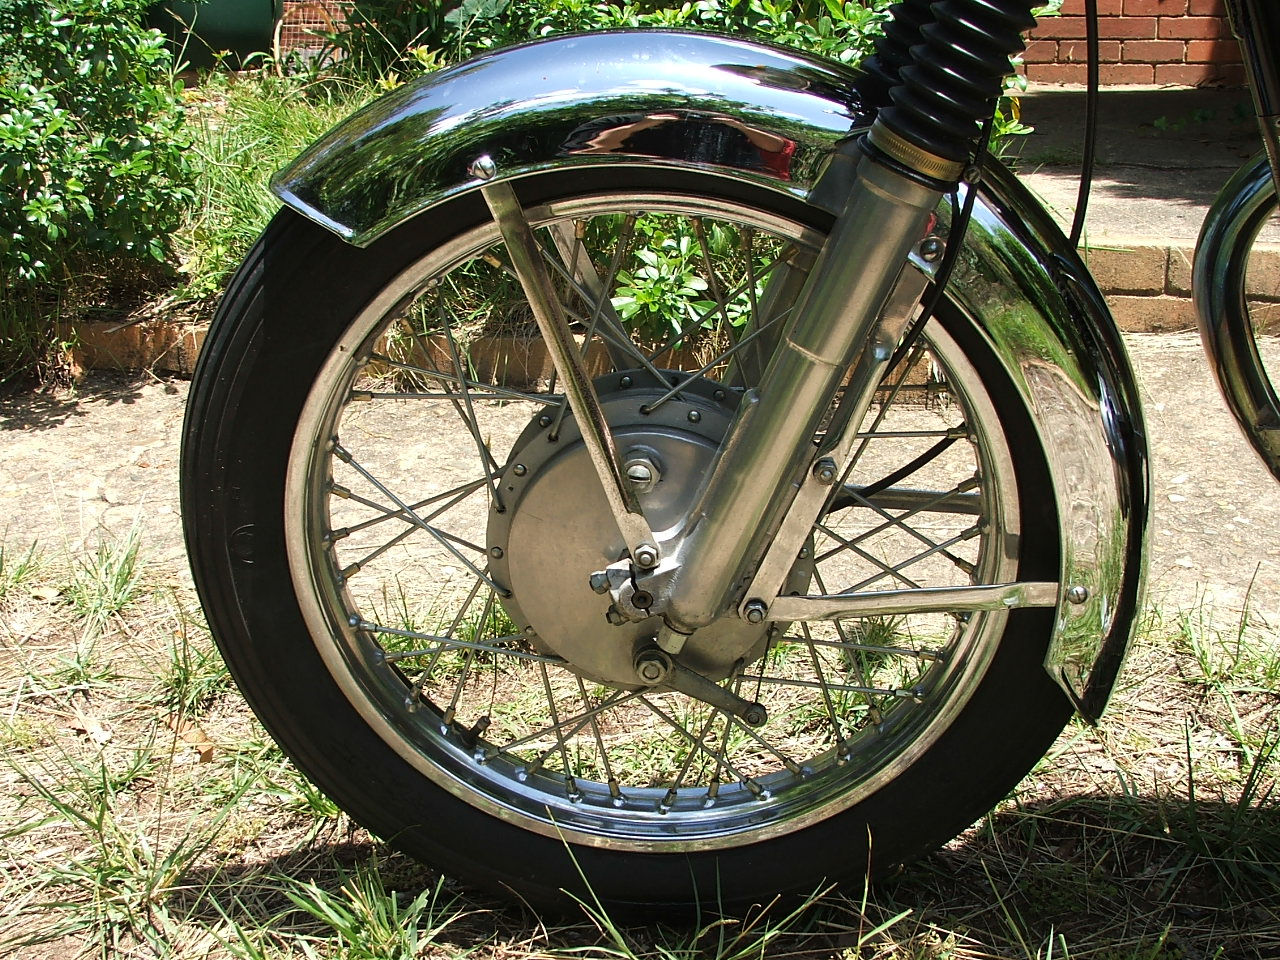 Left front wheel, 350 enfield